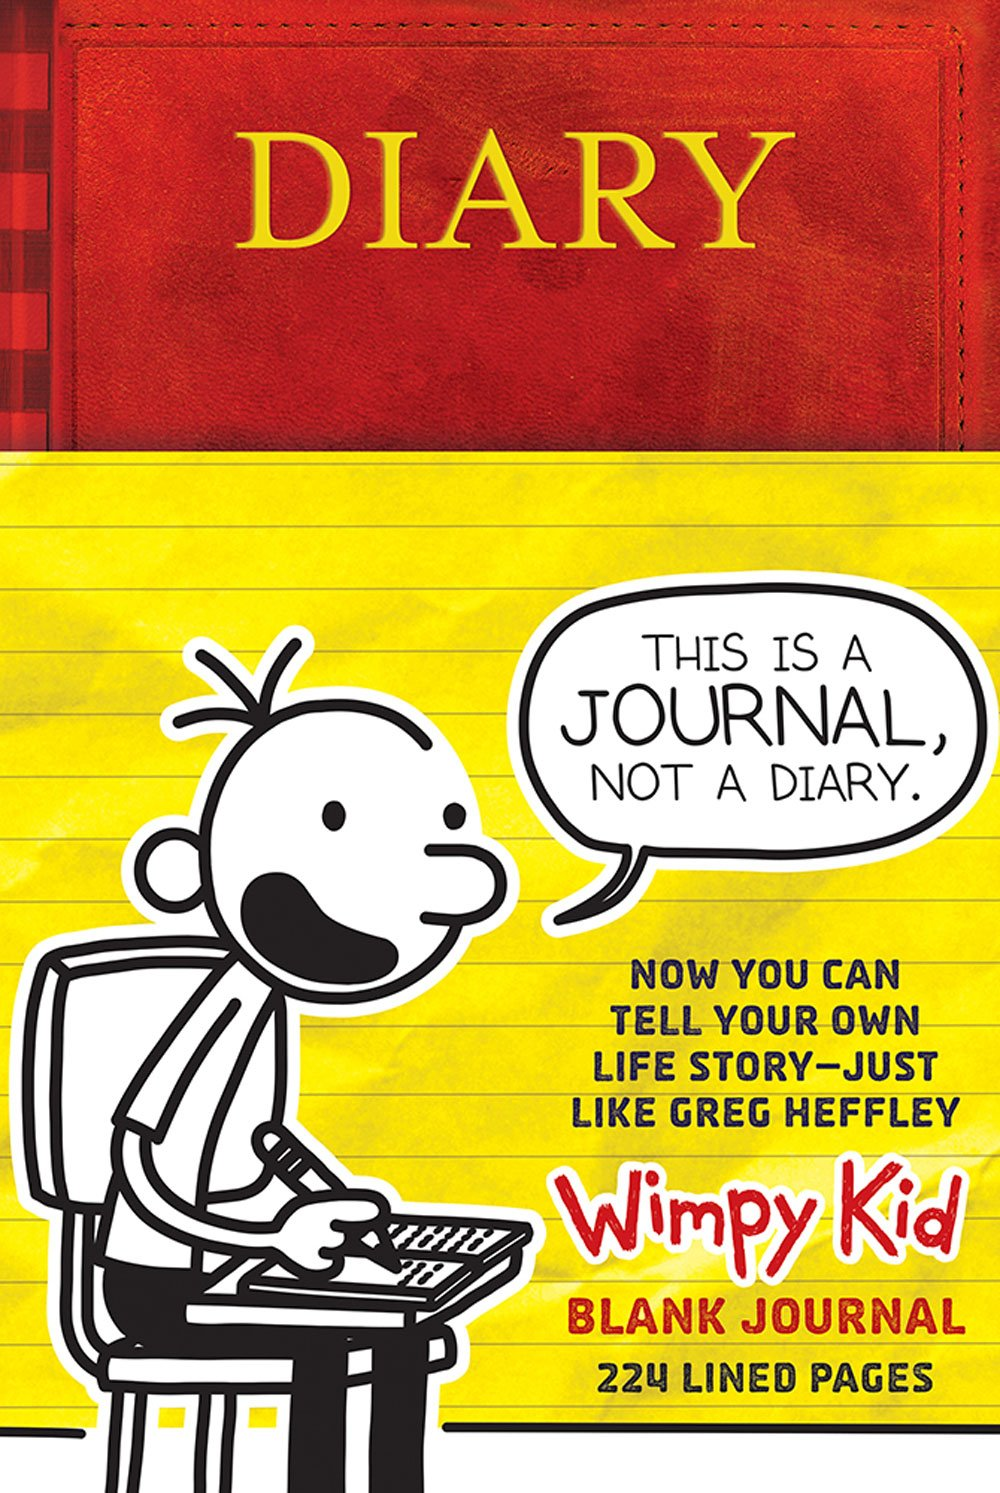 Diary of a Wimpy Kid Blank Journal ruize vintage diary thick notebook bible book leather agenda gold edge blank paper note book office school supplies stationery